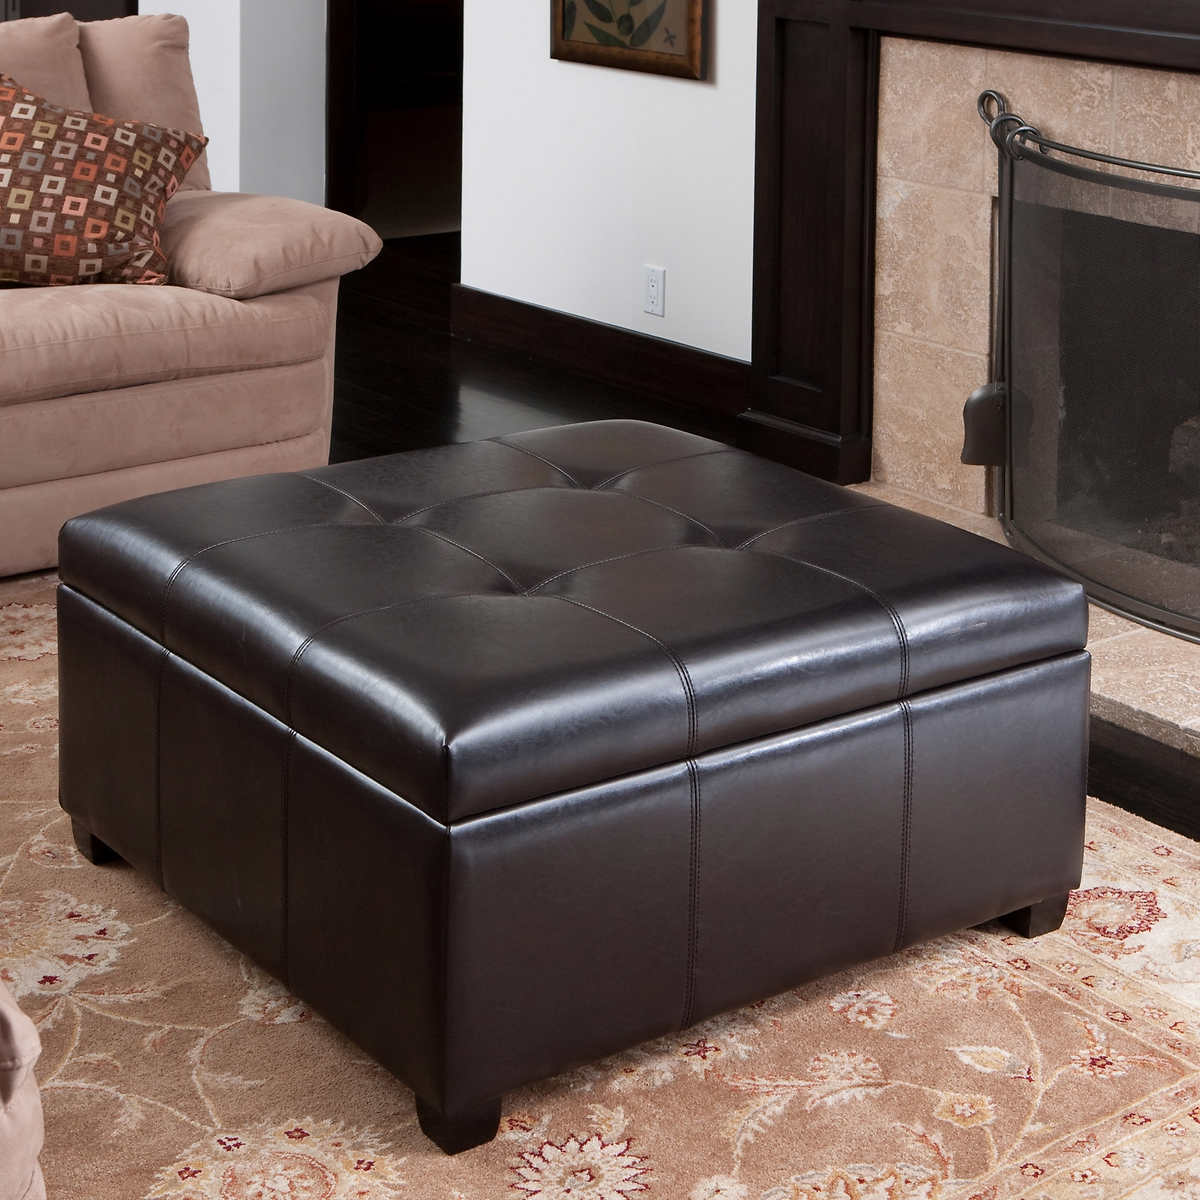 Canyons Bonded Leather Storage Ottoman - Ottomans & Benches Costco